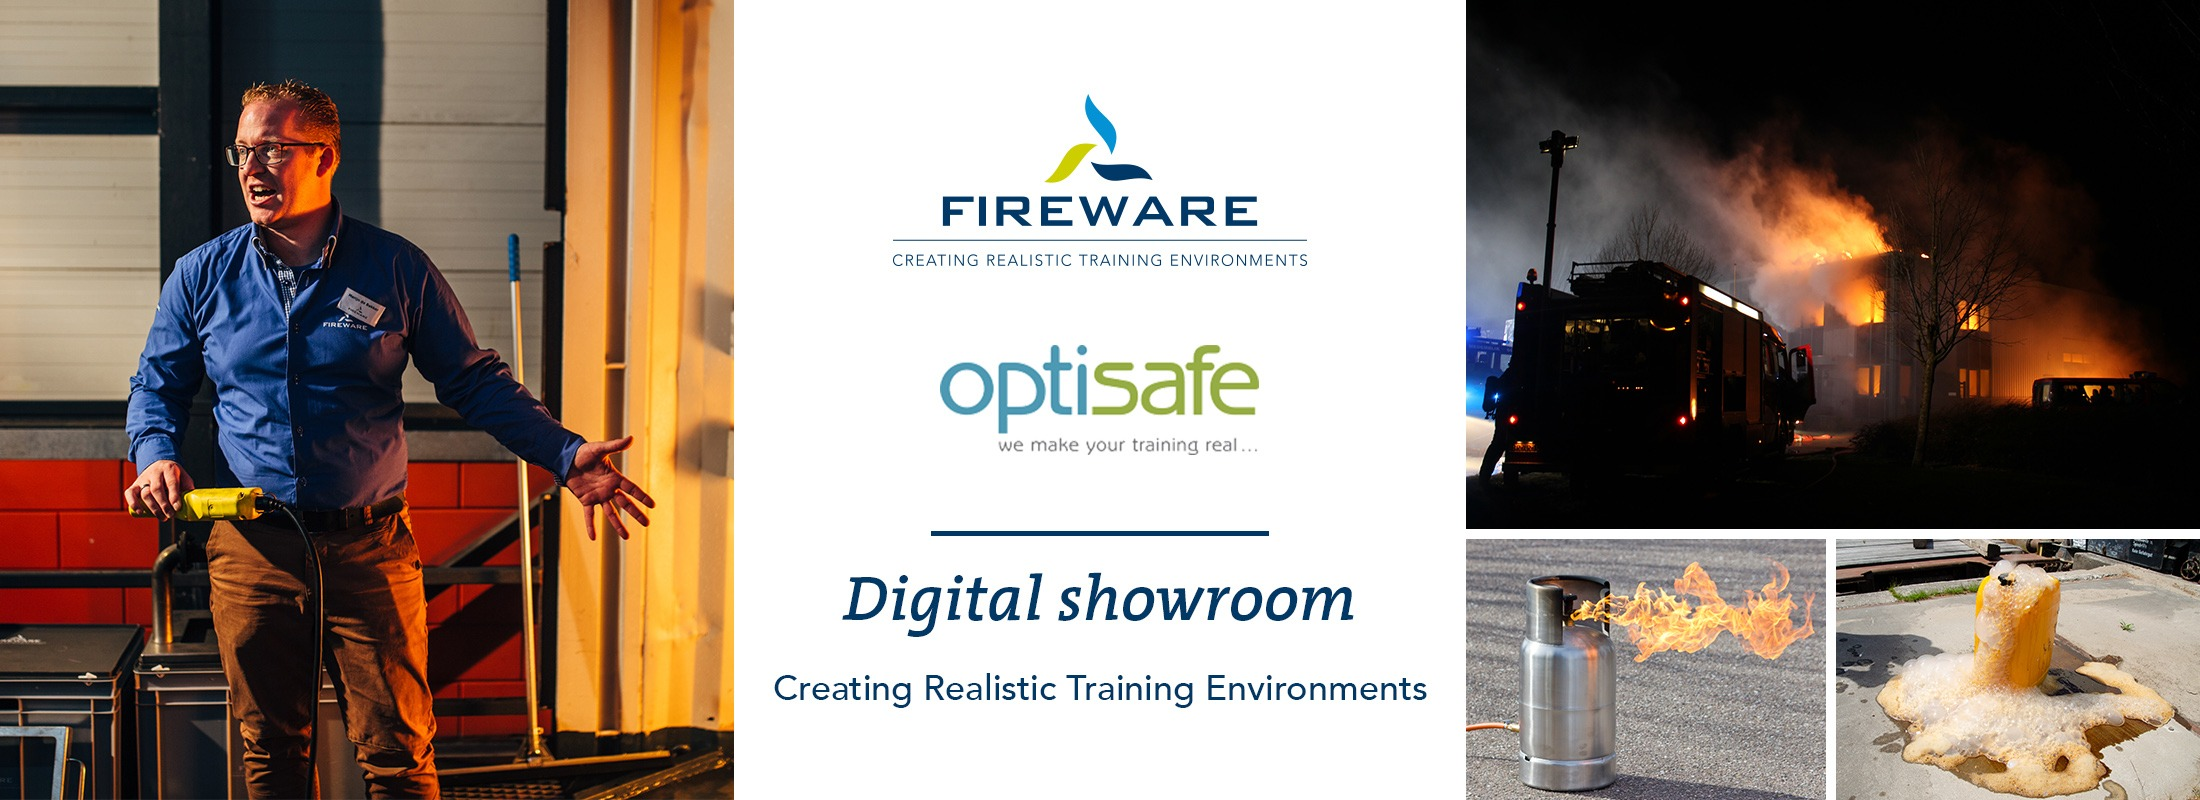 Optisafe digital showroom